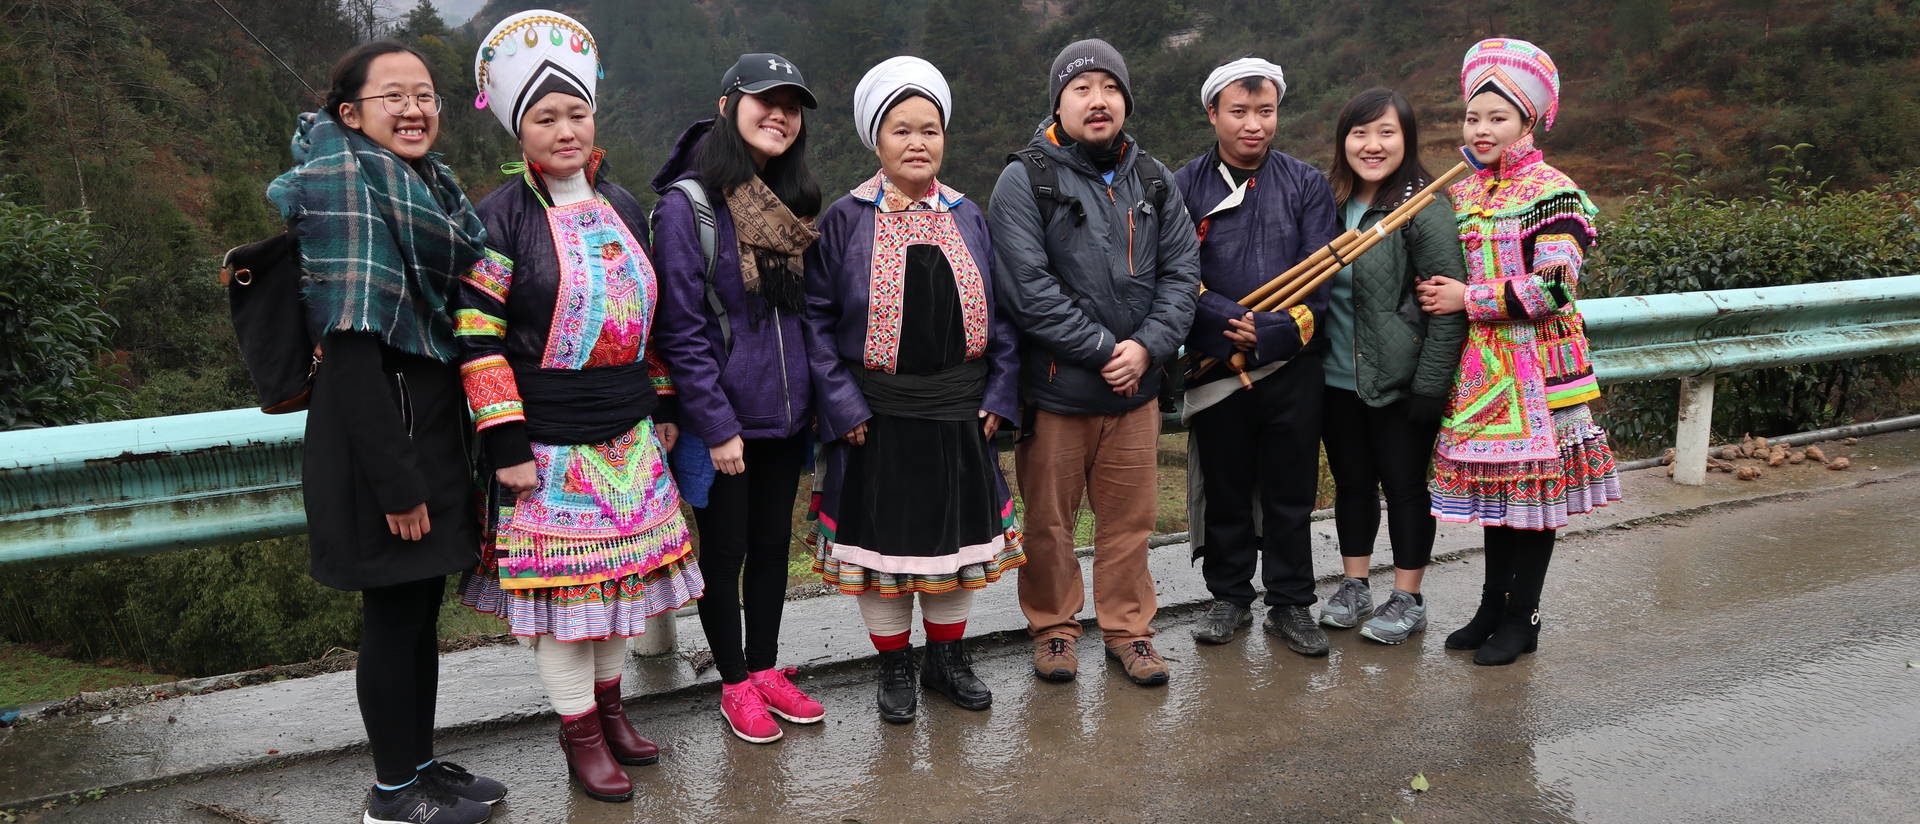 Blugolds spent time exploring small villages in the southern part of China during Winterim, immersing themselves in Hmong and other ethnic cultures.